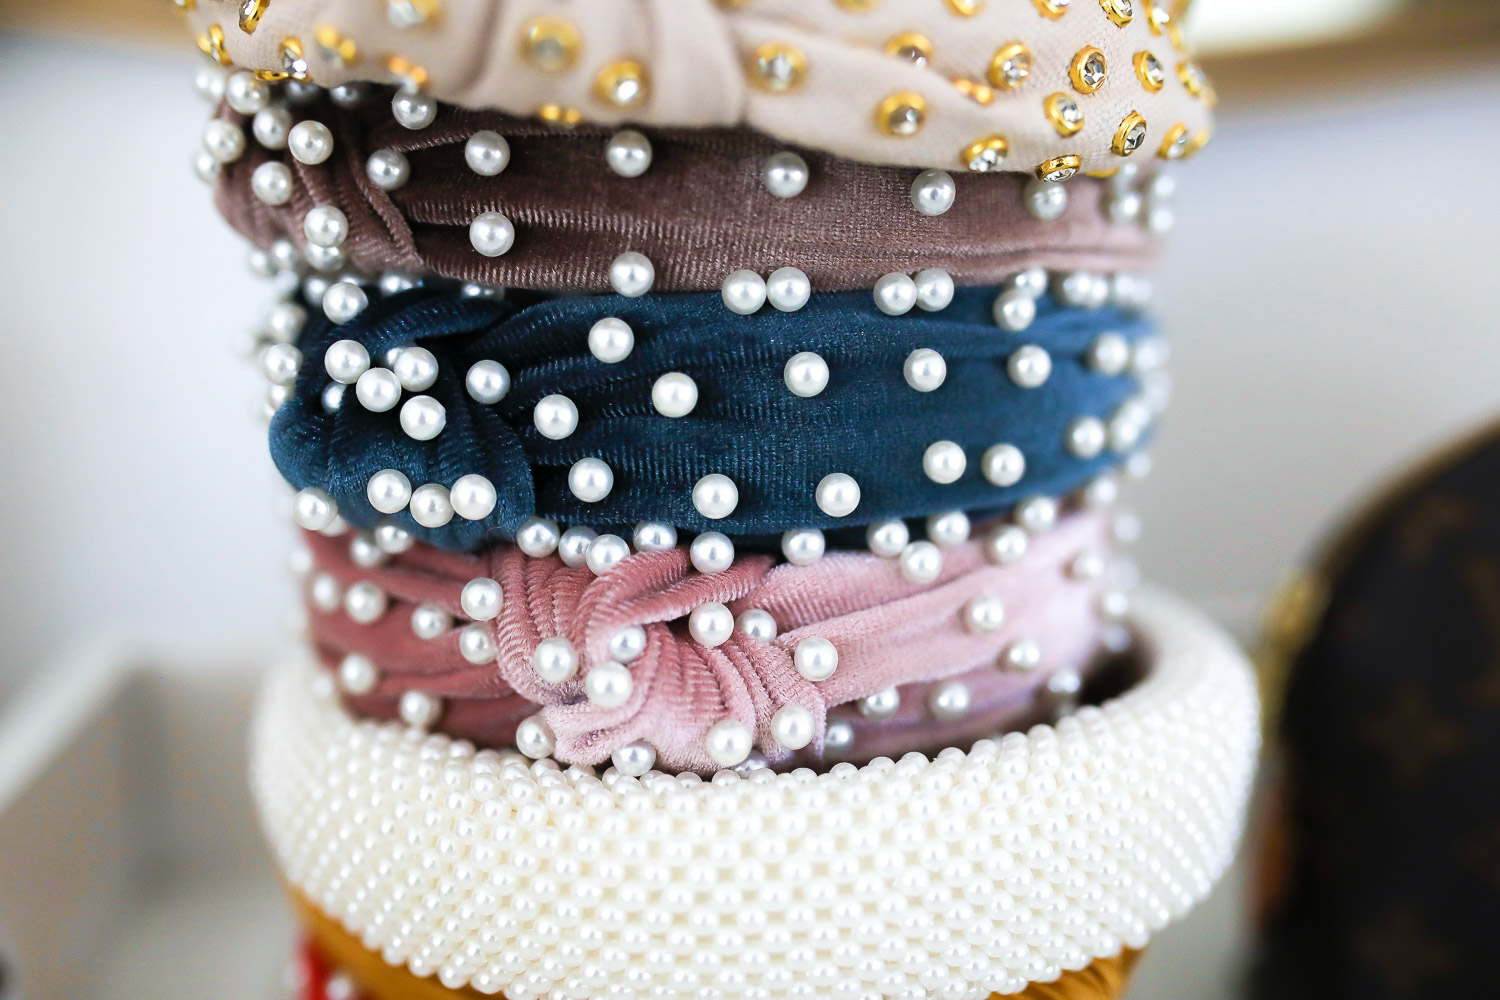 pearl velvet headband, swig marble cup insulated, top amazon must haves, amazon best buys 2020, emily gemma, amazon prime must haves blog post,_-4   Amazon Prime Favorites by popular US life and style blog, The Sweetest Thing: image of Amazon Prime pearl headbands.